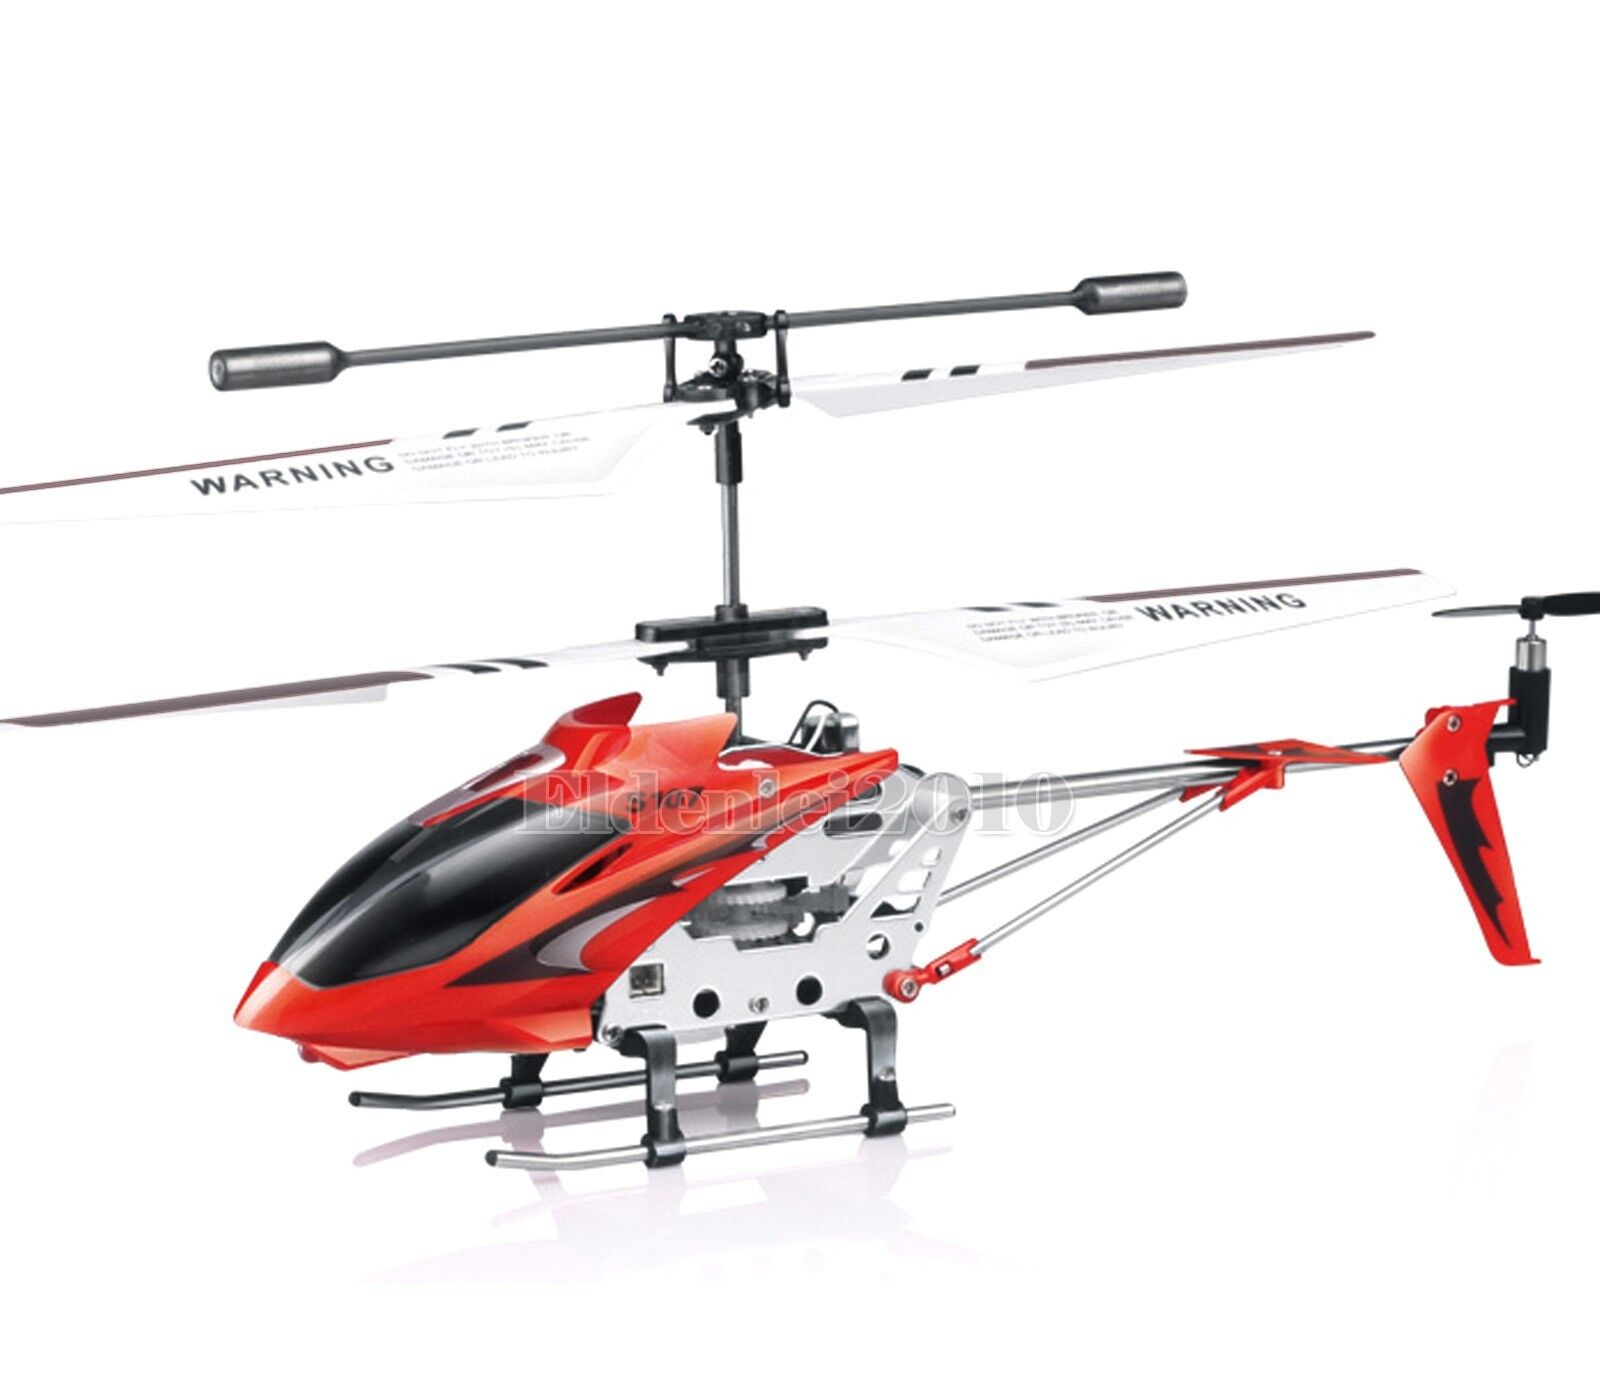 cheap remote controlled helicopter with Remote Control Helicopter In Water on 6 Axis Gyroscope Rc Quadcopter With Camera moreover Flying additionally Buy 4494 Remote Control Airplanes additionally Project Idea Single Rotor Uav in addition 231009486.